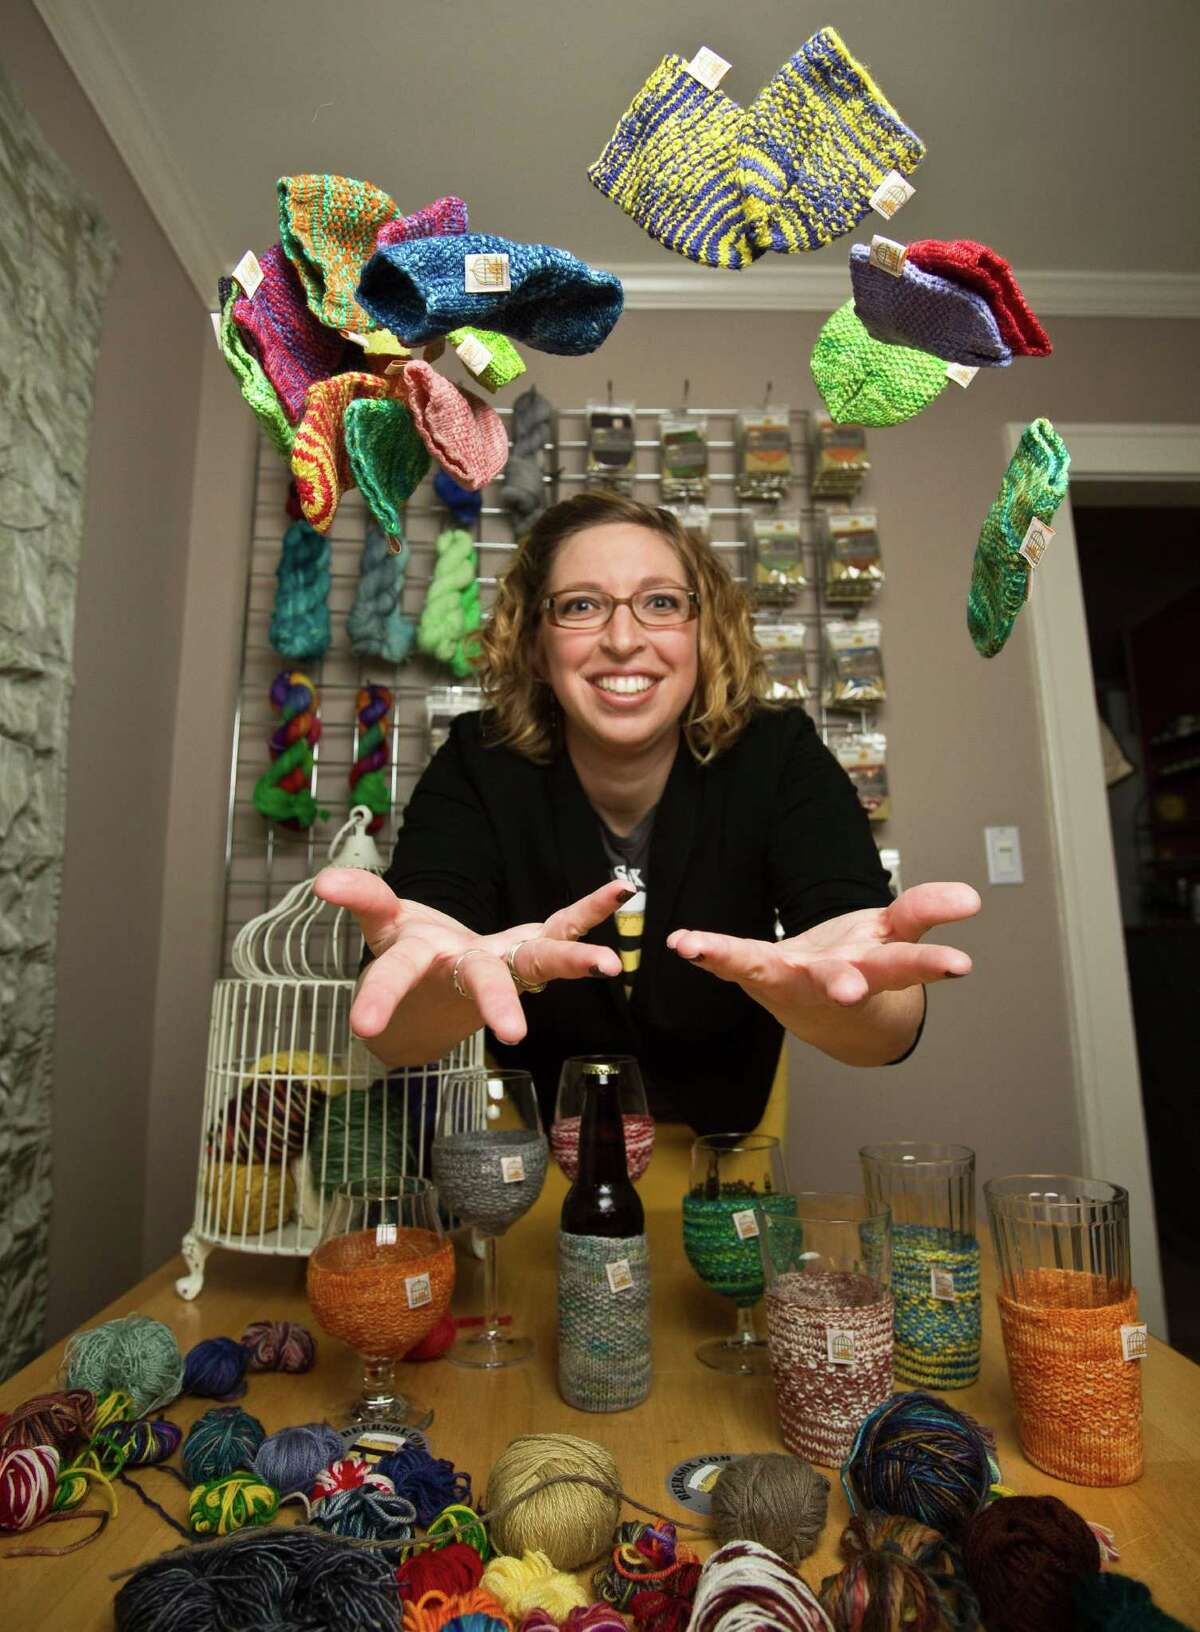 Katie Mahoney, owner of The Caged Yarn, has to juggle her regular job in the energy industry with her small business that makes hand-knit covers for beverage glasses and cans.Katie Mahoney, owner of The Caged Yarn, has to juggle her regular job in the energy industry with her small business that makes hand-knit covers for beverage glasses and cans.